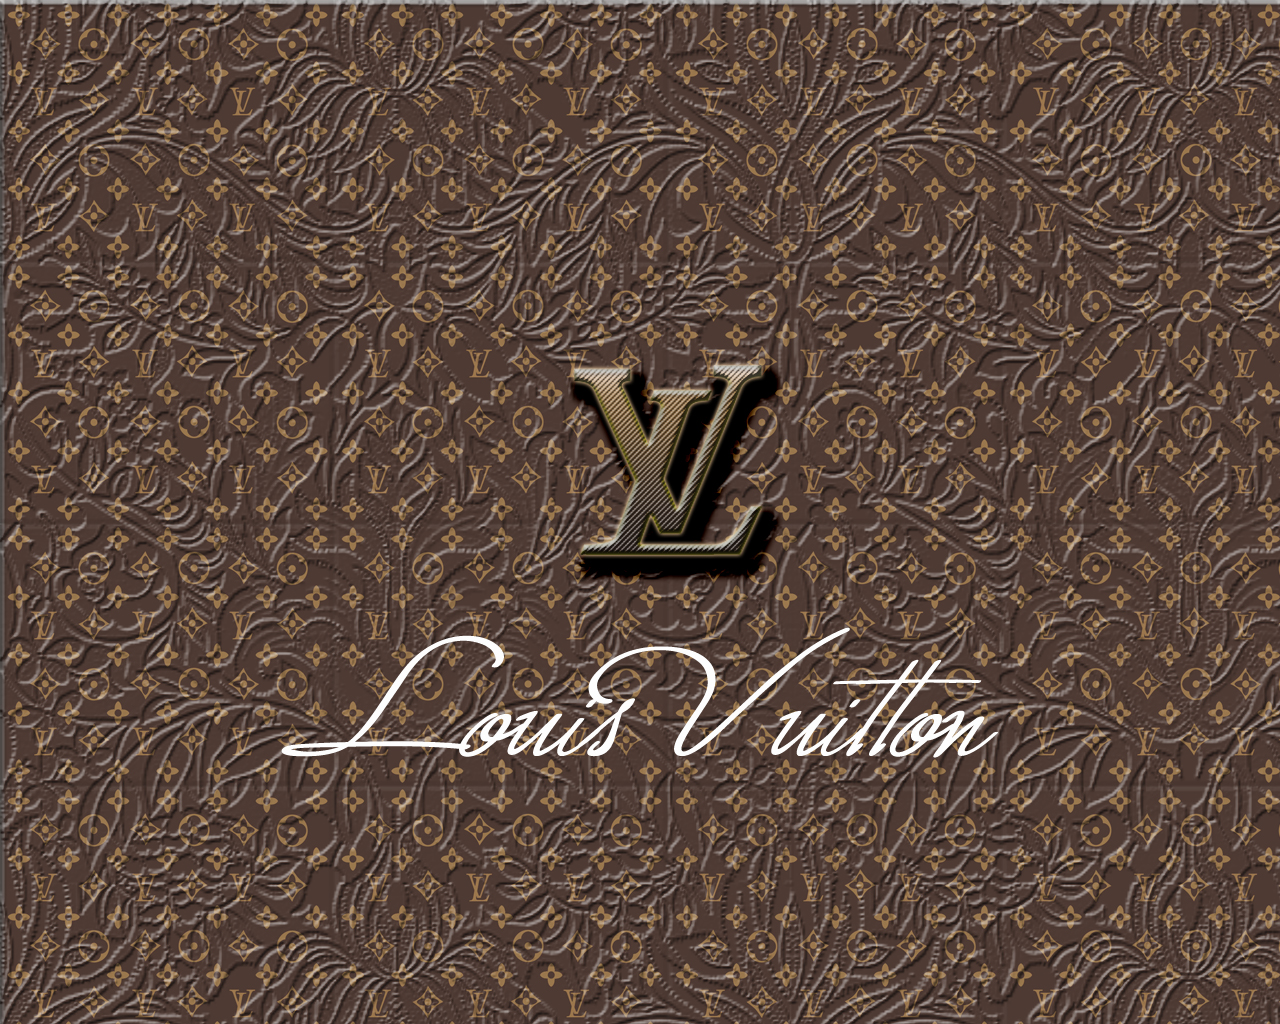 Louis Vuitton BW iPhone s Wallpaper Download  iPhone Wallpapers 1280x1024